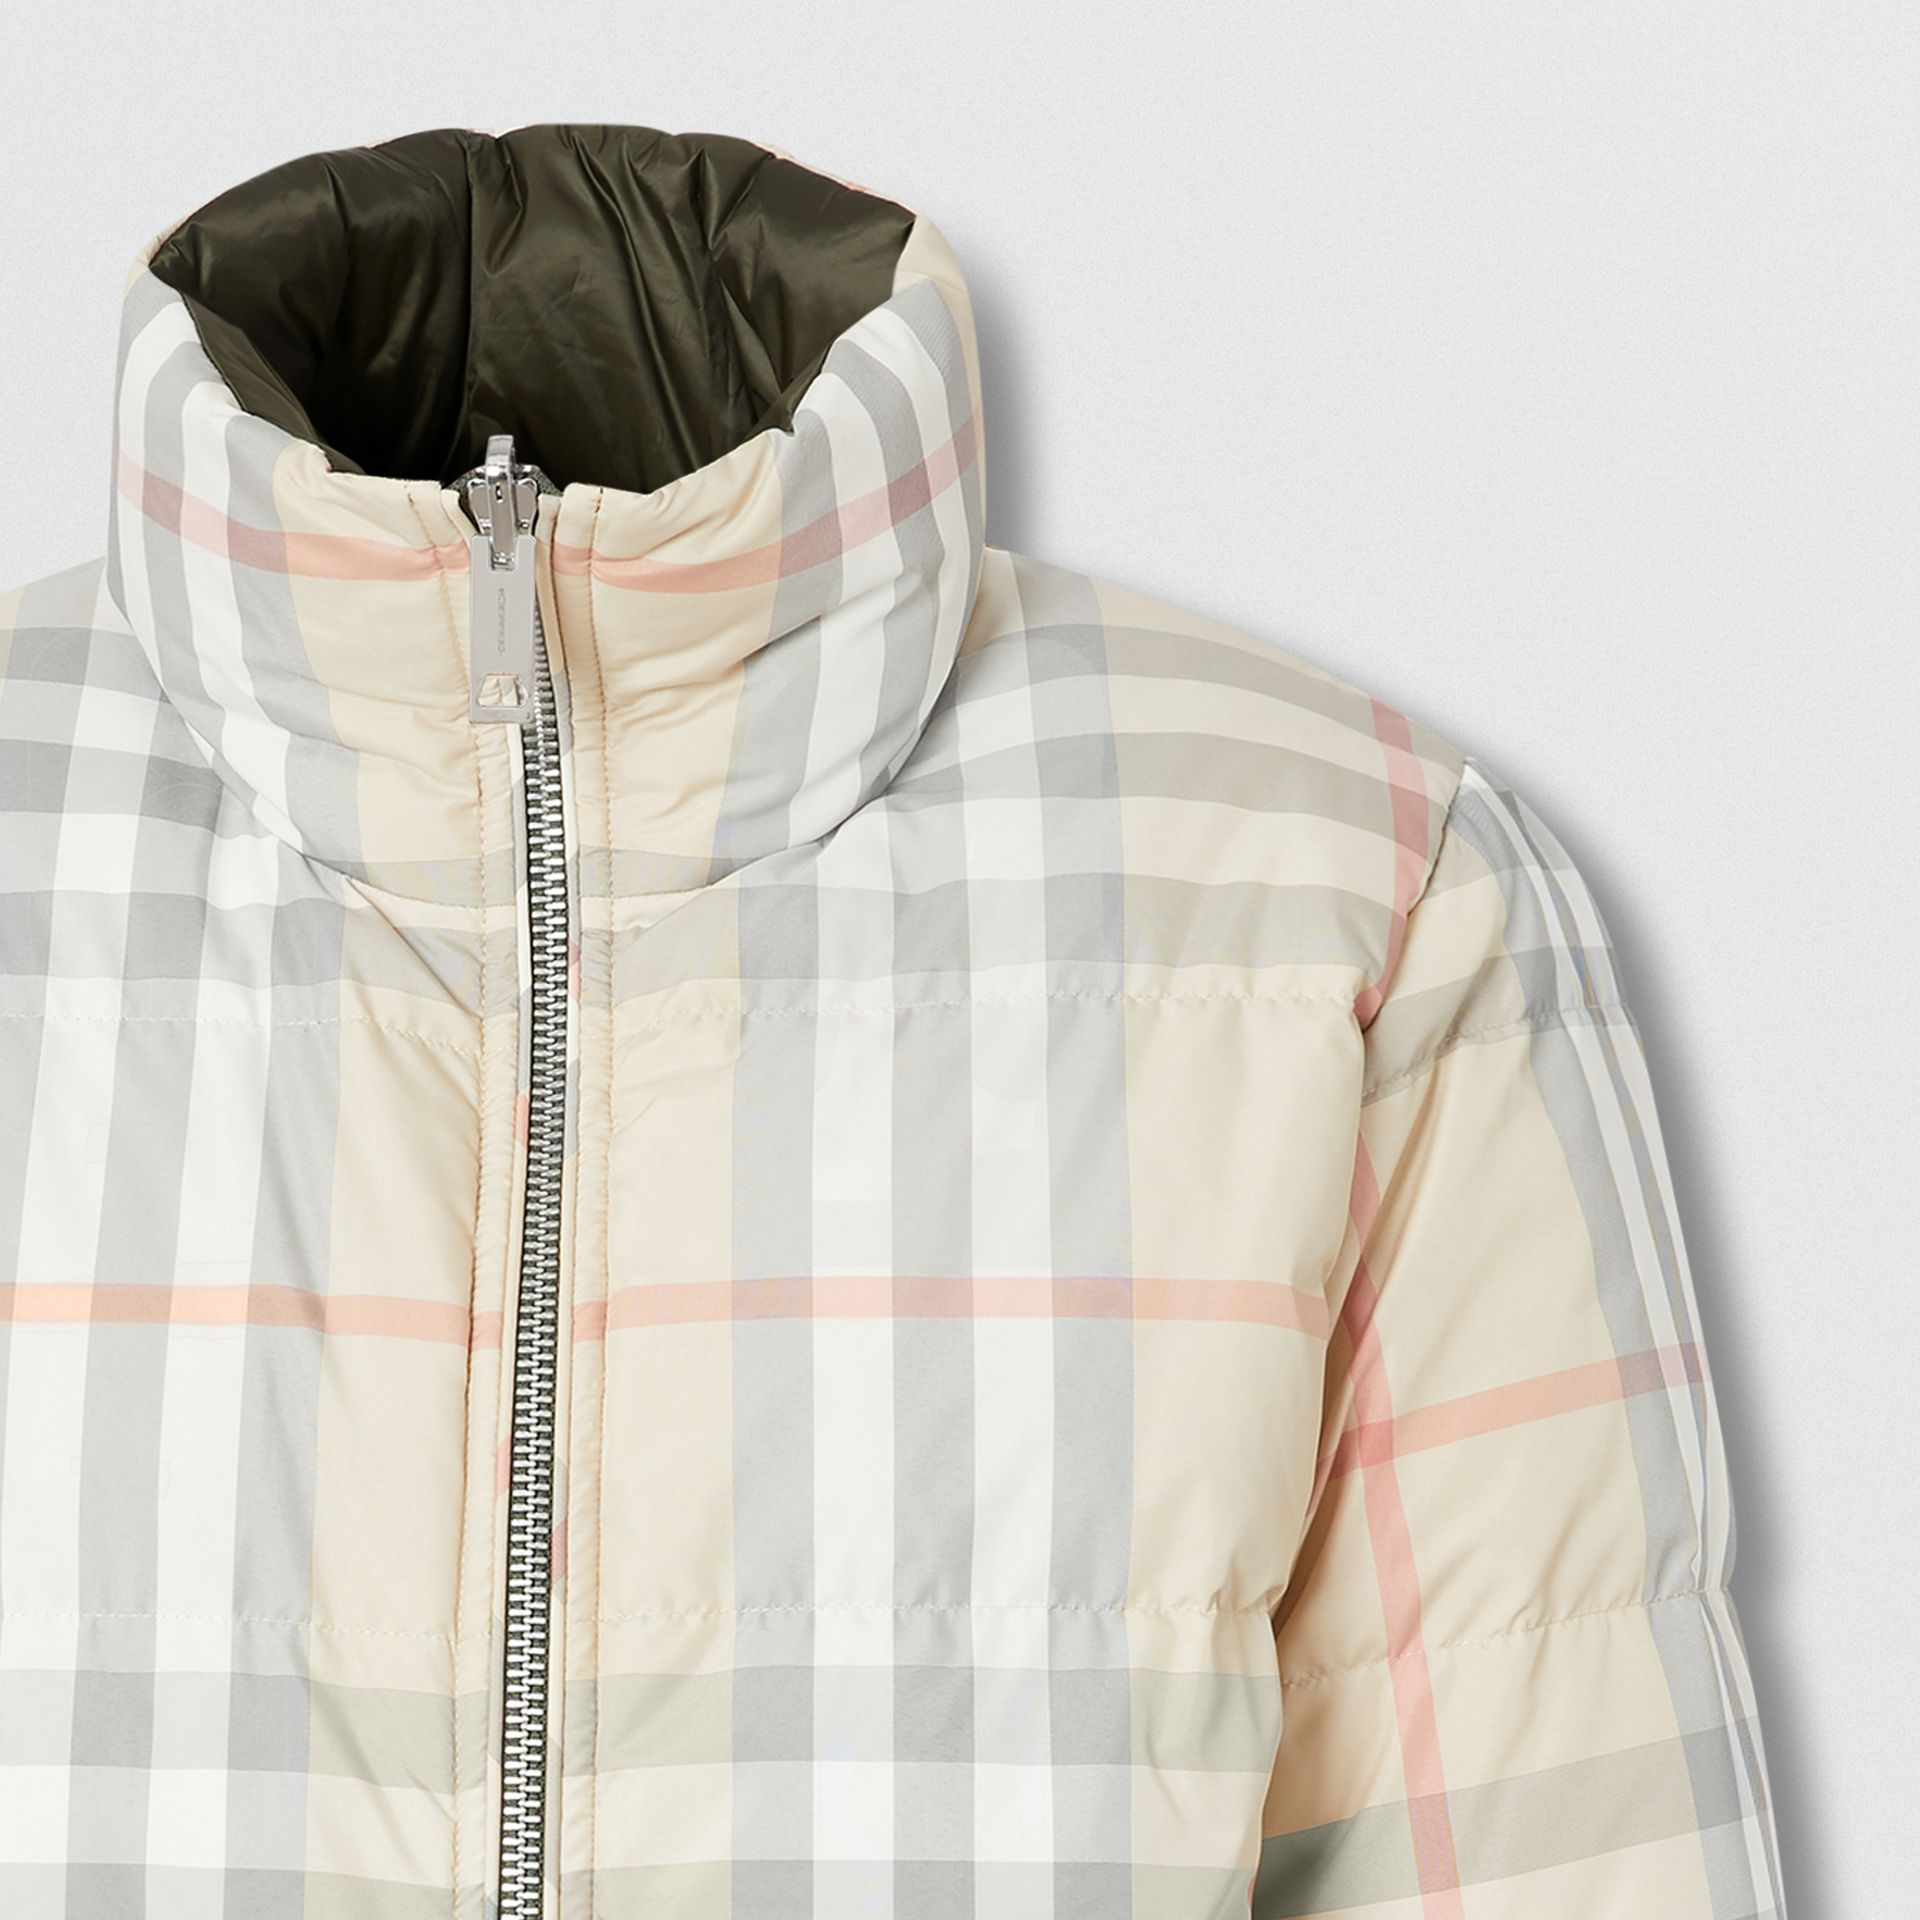 Reversible Check Puffer Jacket in Olive - Women | Burberry - gallery image 1